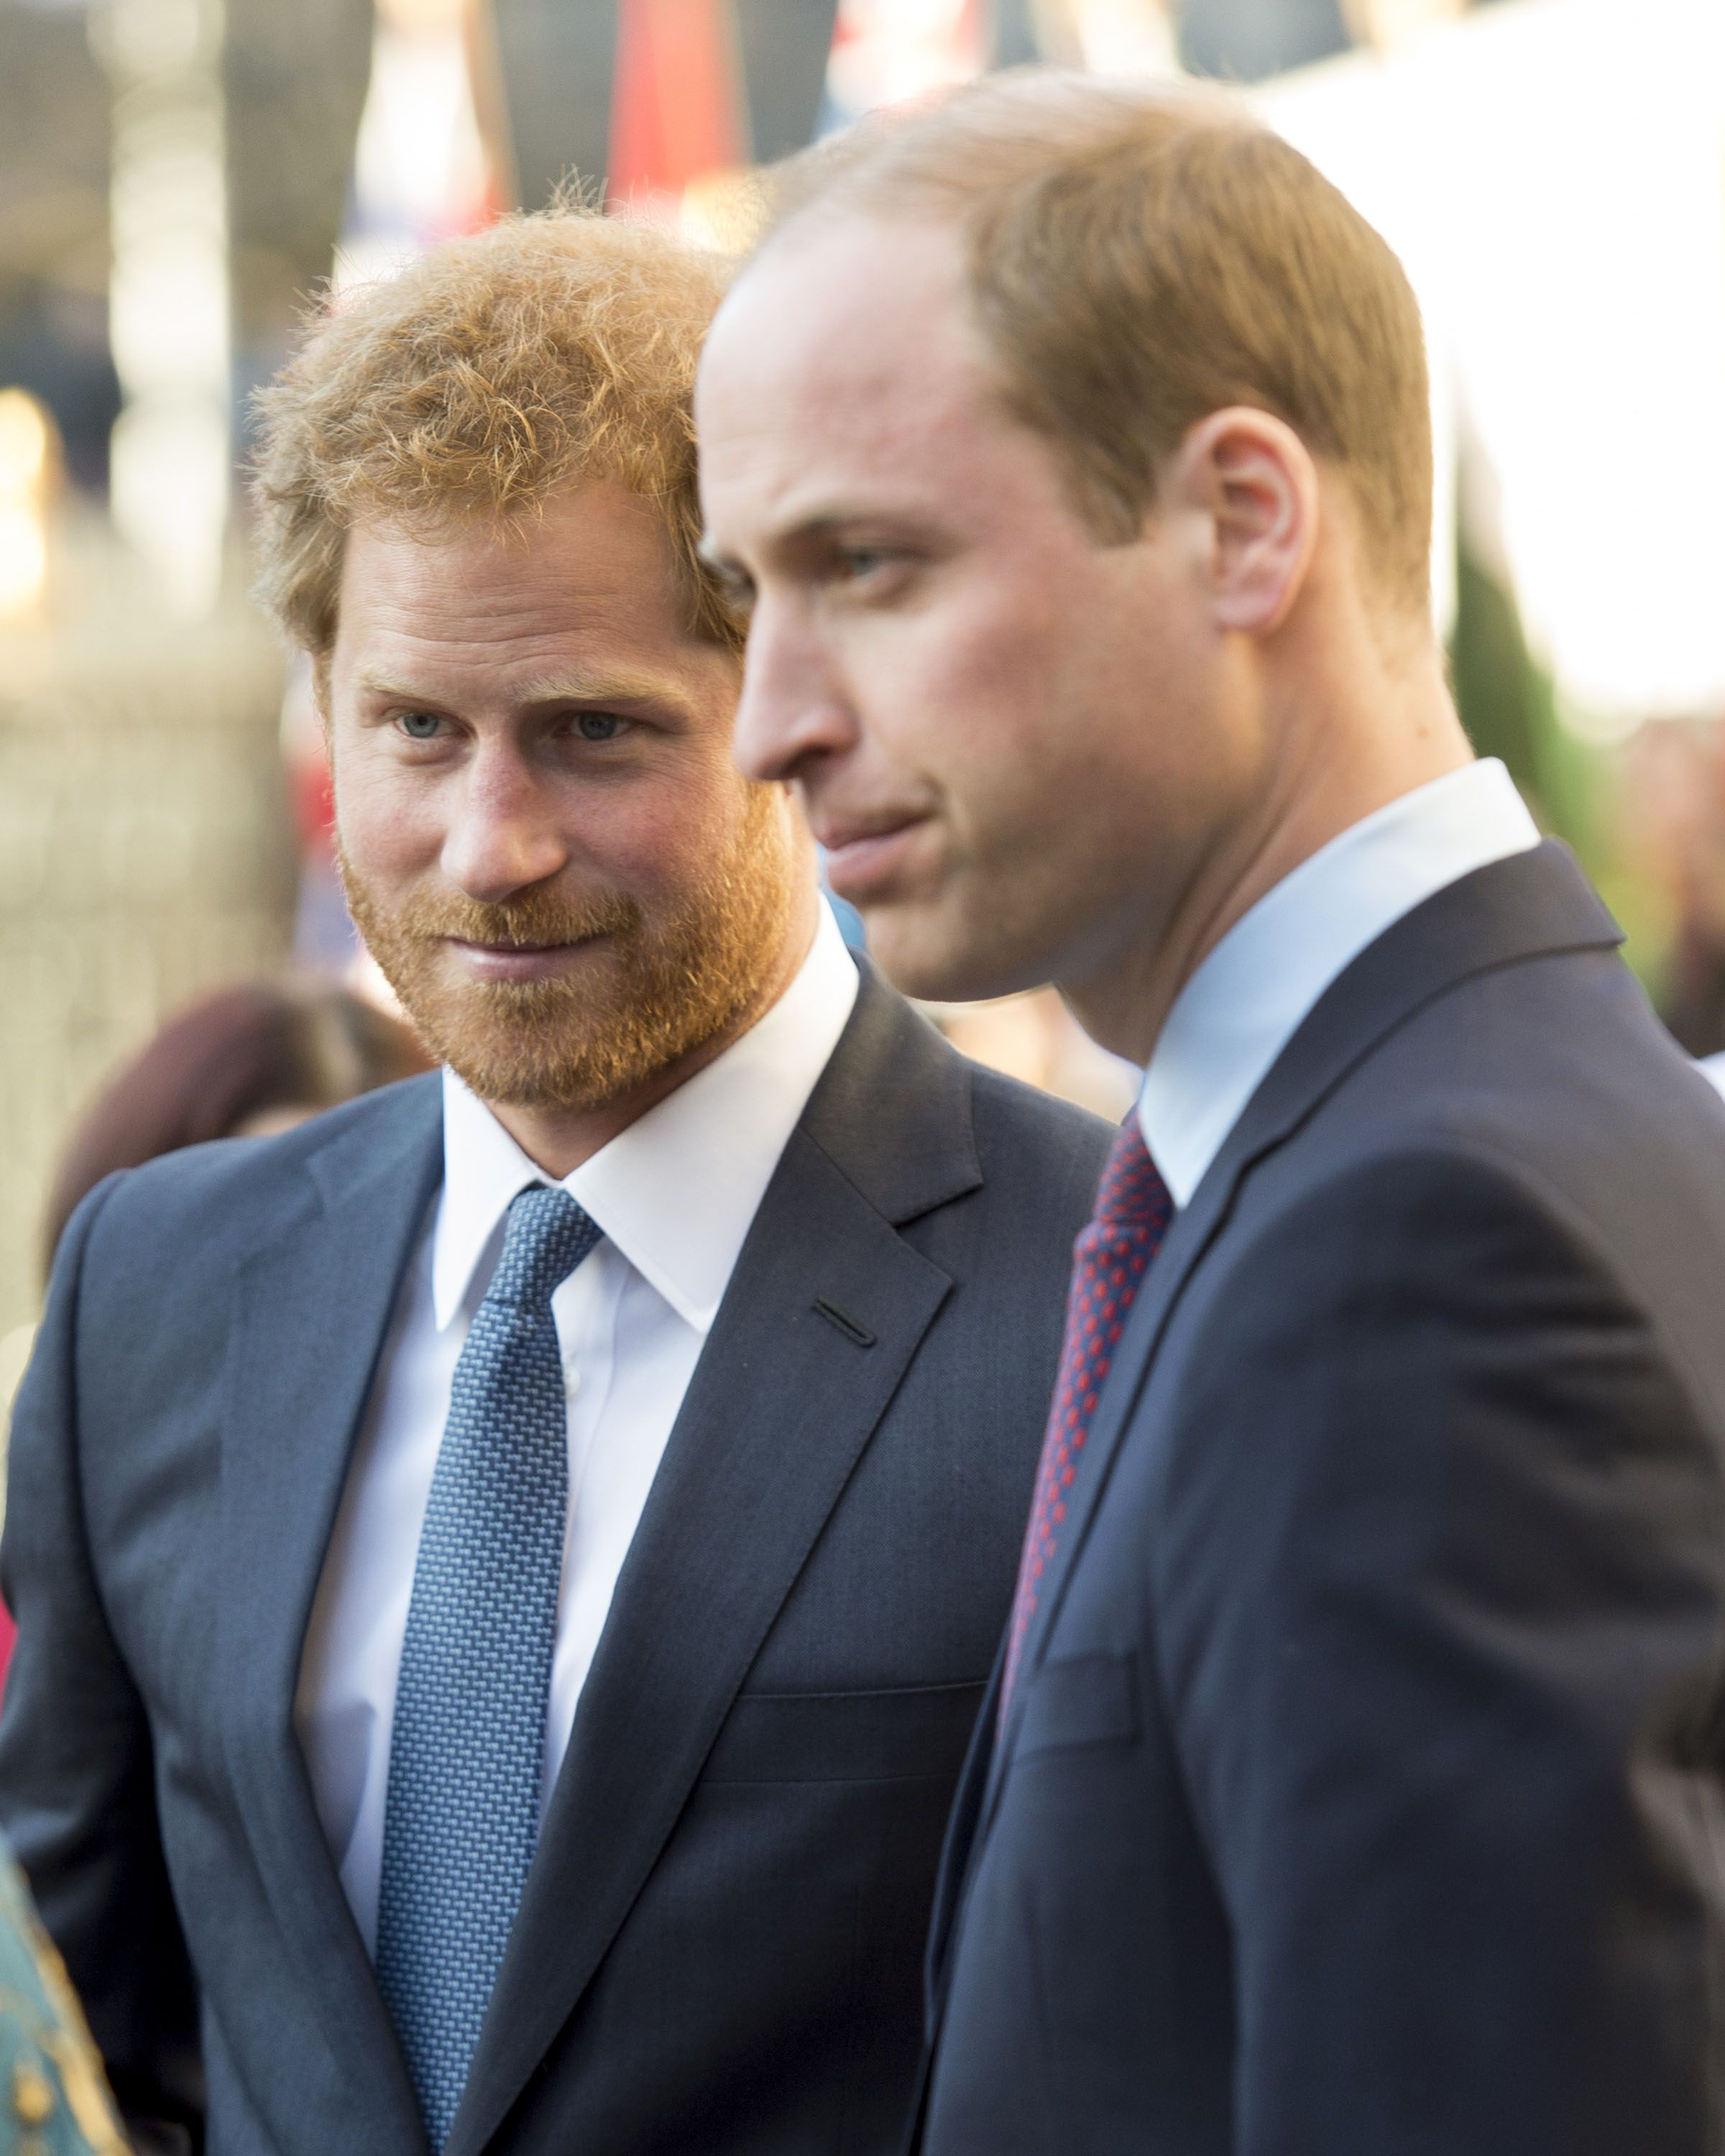 """An Official Timeline of Prince William and Prince Harry's """"Royal Rift"""""""